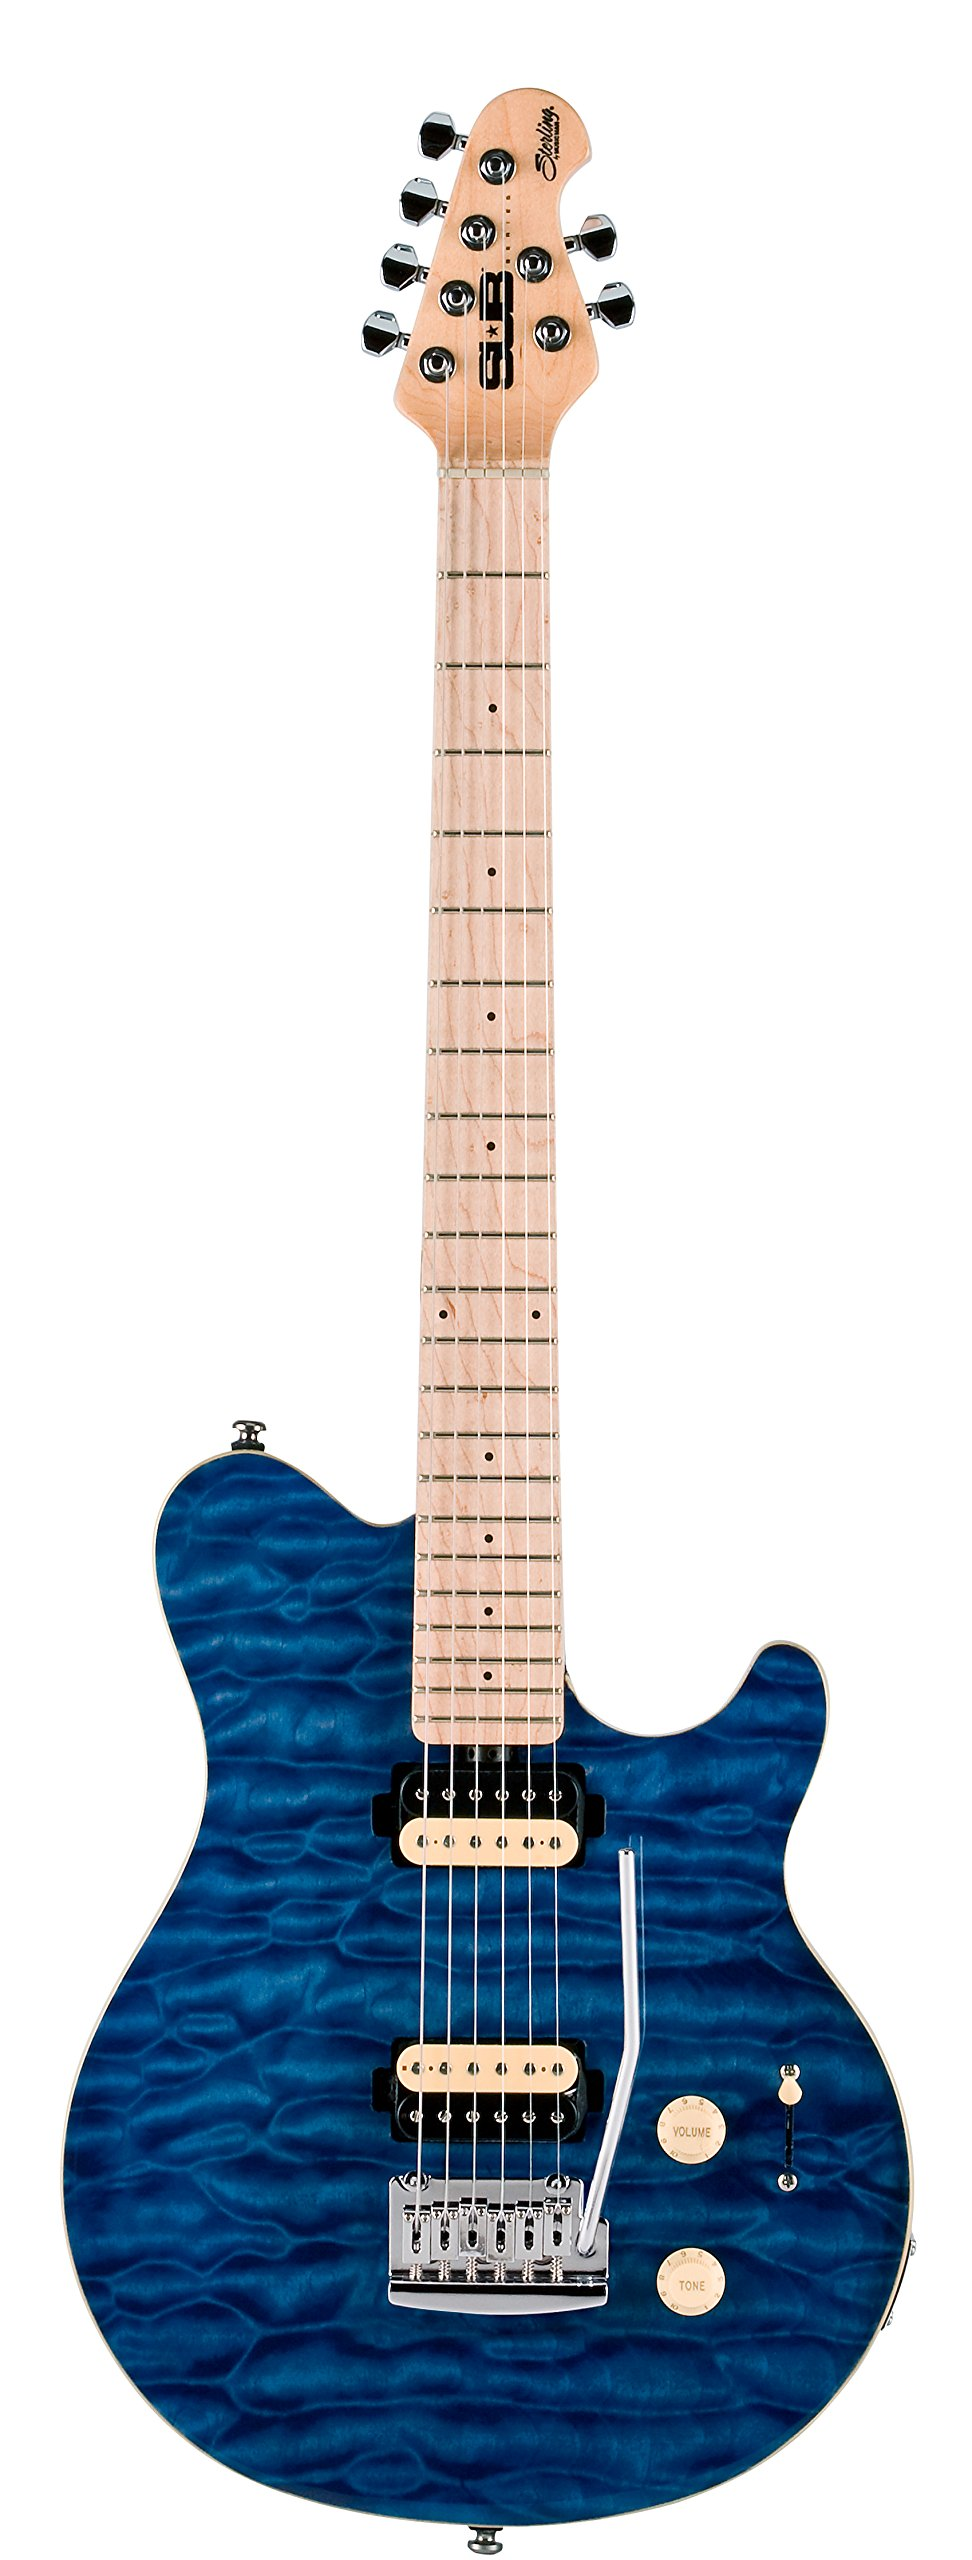 Sterling by Music Man S.U.B. Series AX3 Axis Electric Guitar, Translucent Blue